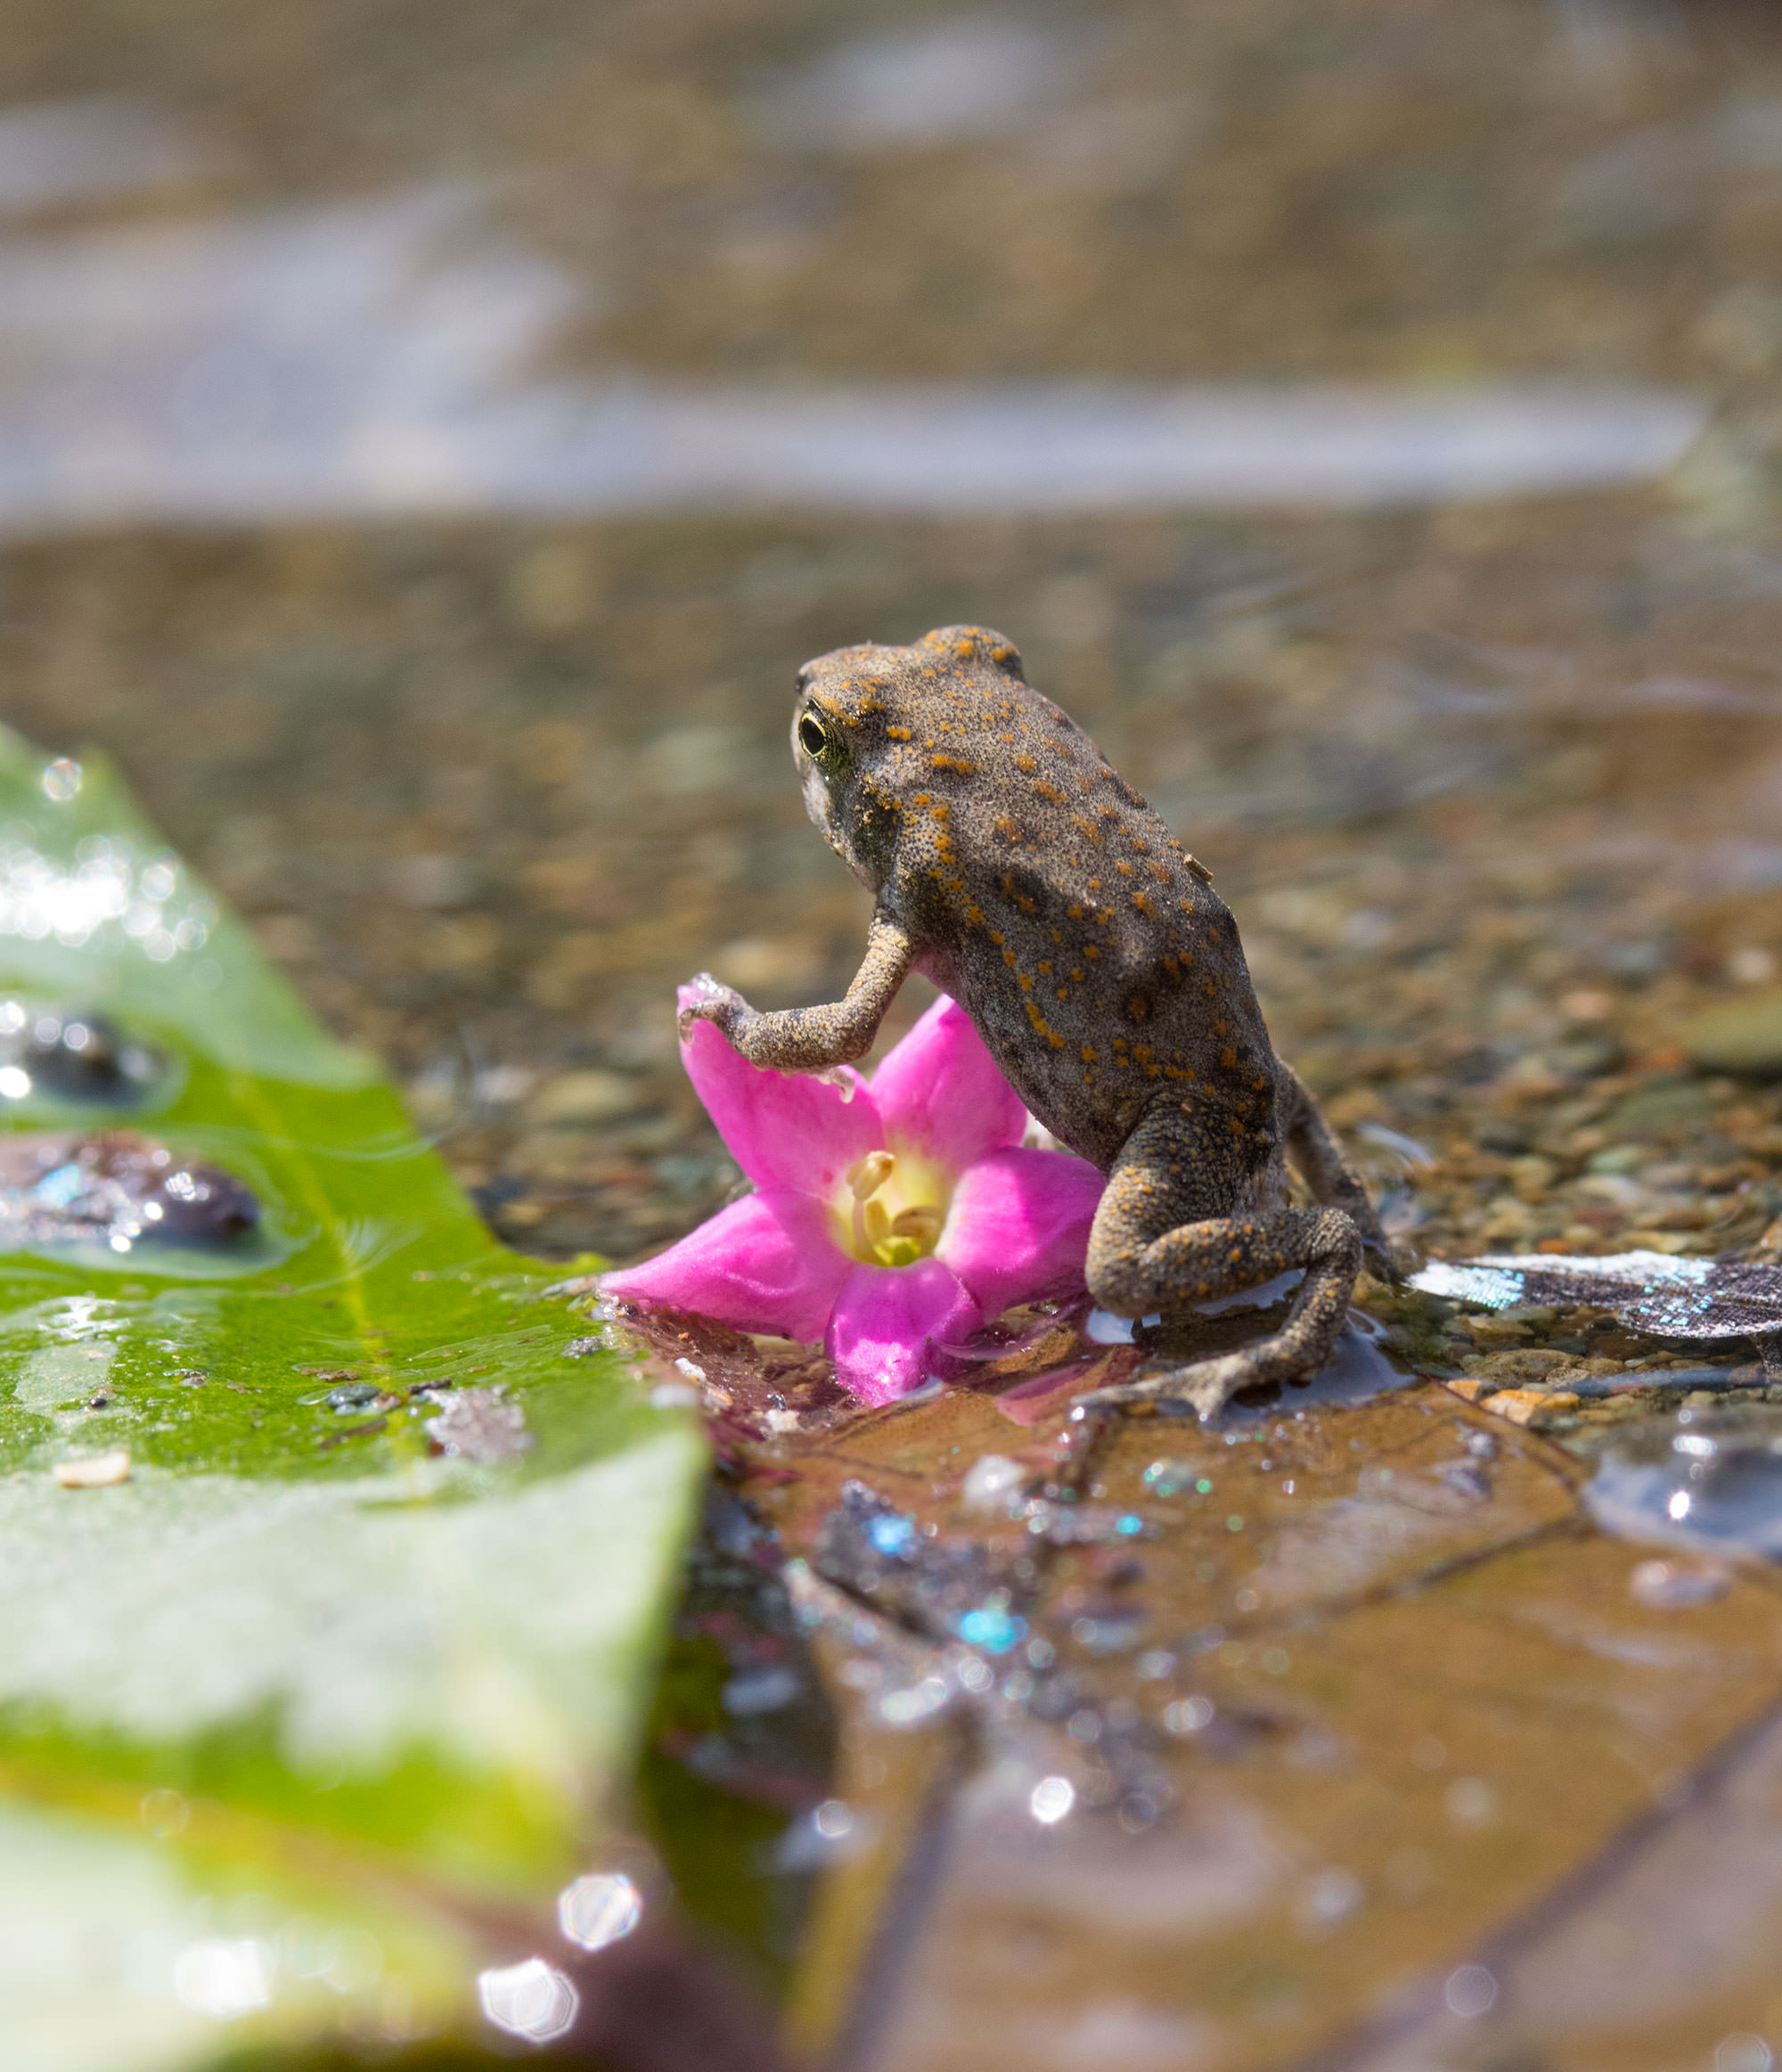 Common Toad on Flower at the mouth of Madrigal River